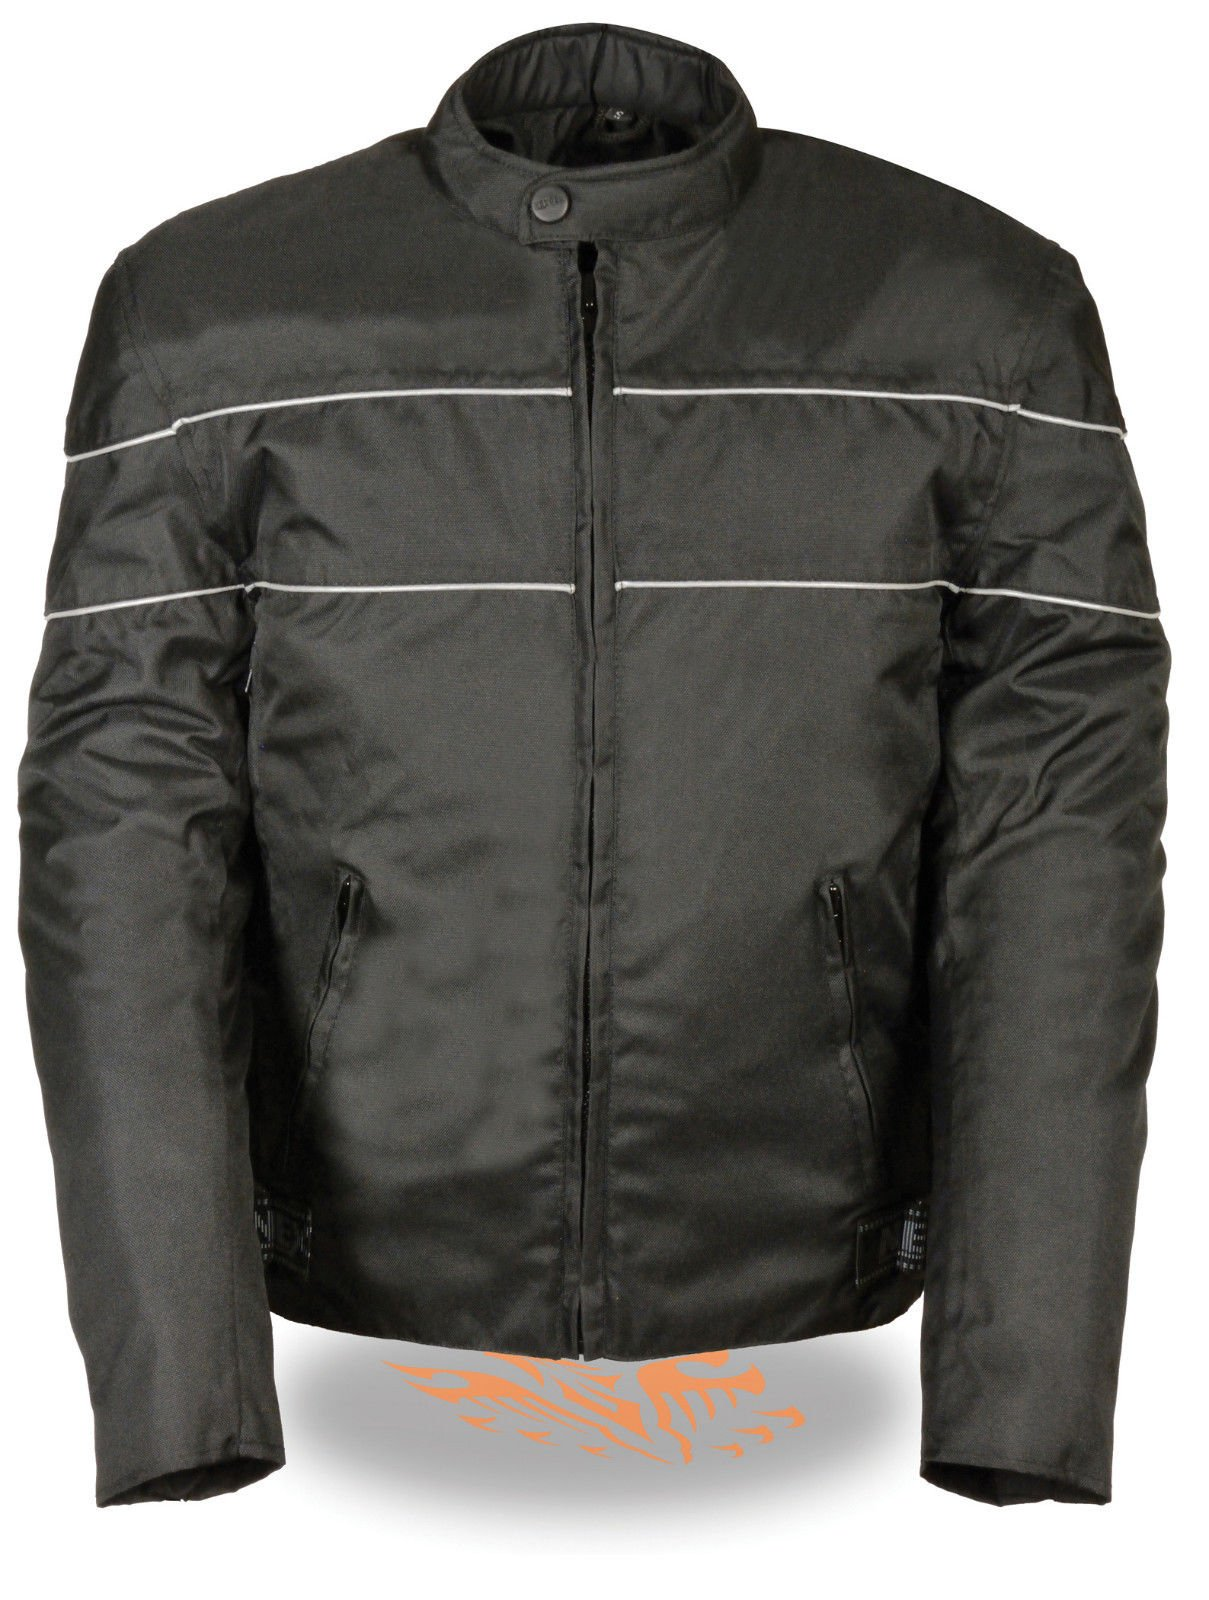 Nexgen MEN'S MOTORCYCLE SCOOTER VENTED TEXTILE JACKET W/REFLECTIVE PIPING GUN POCKET (10XL Reflective Black)